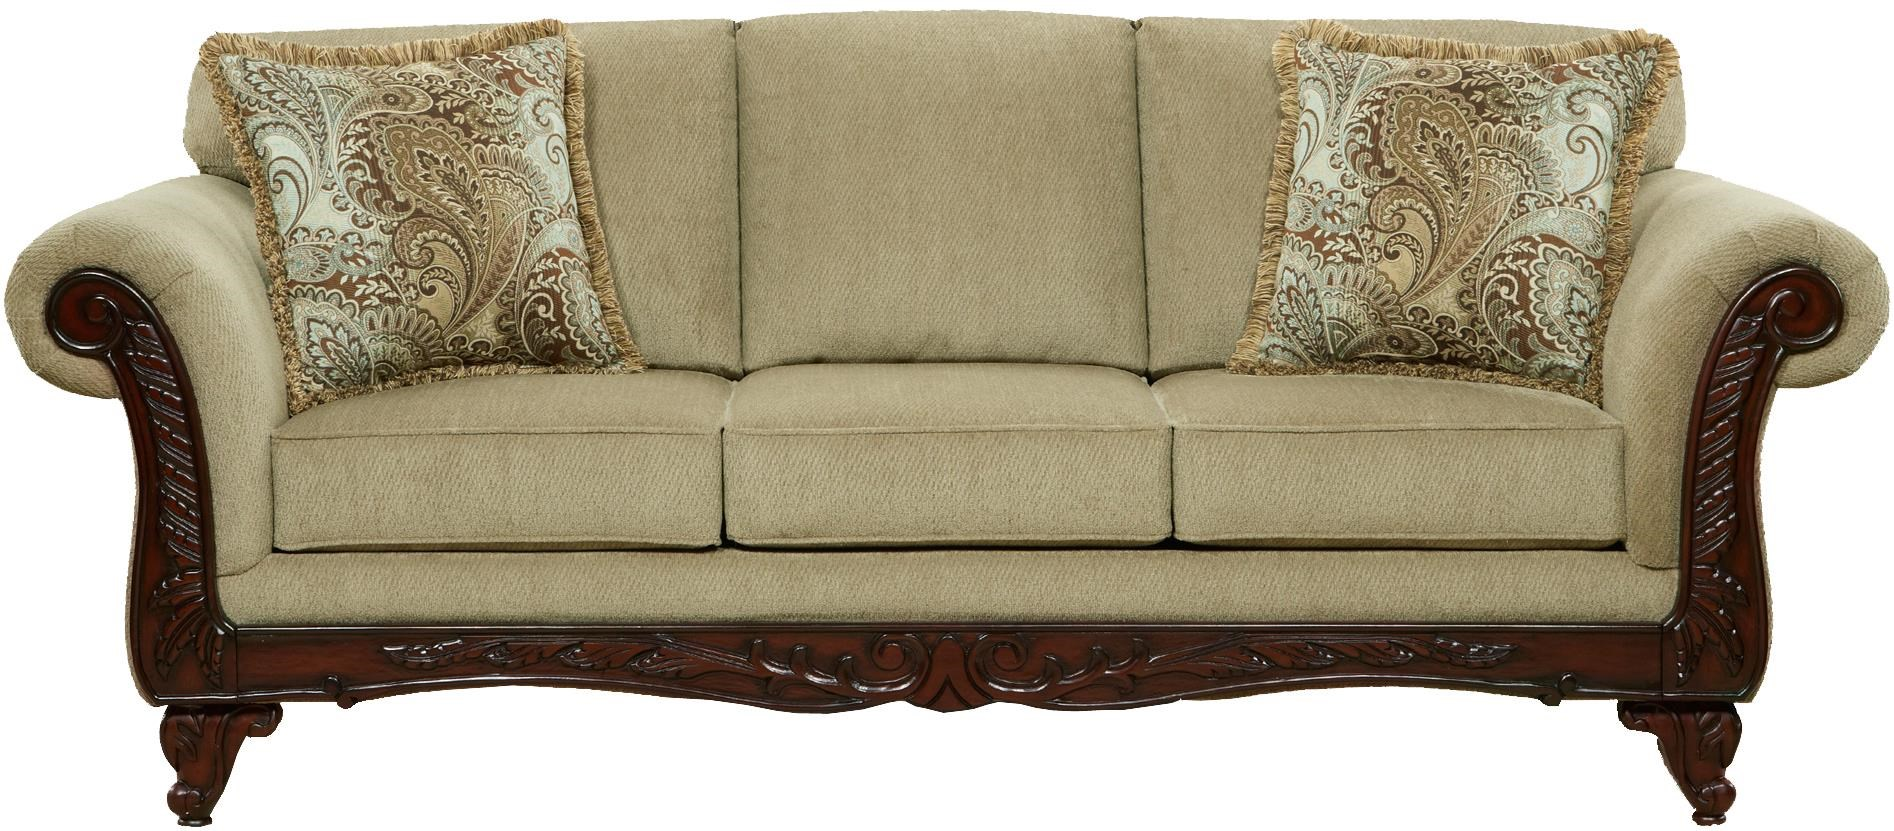 Affordable Furniture 8500 Traditional Sofa